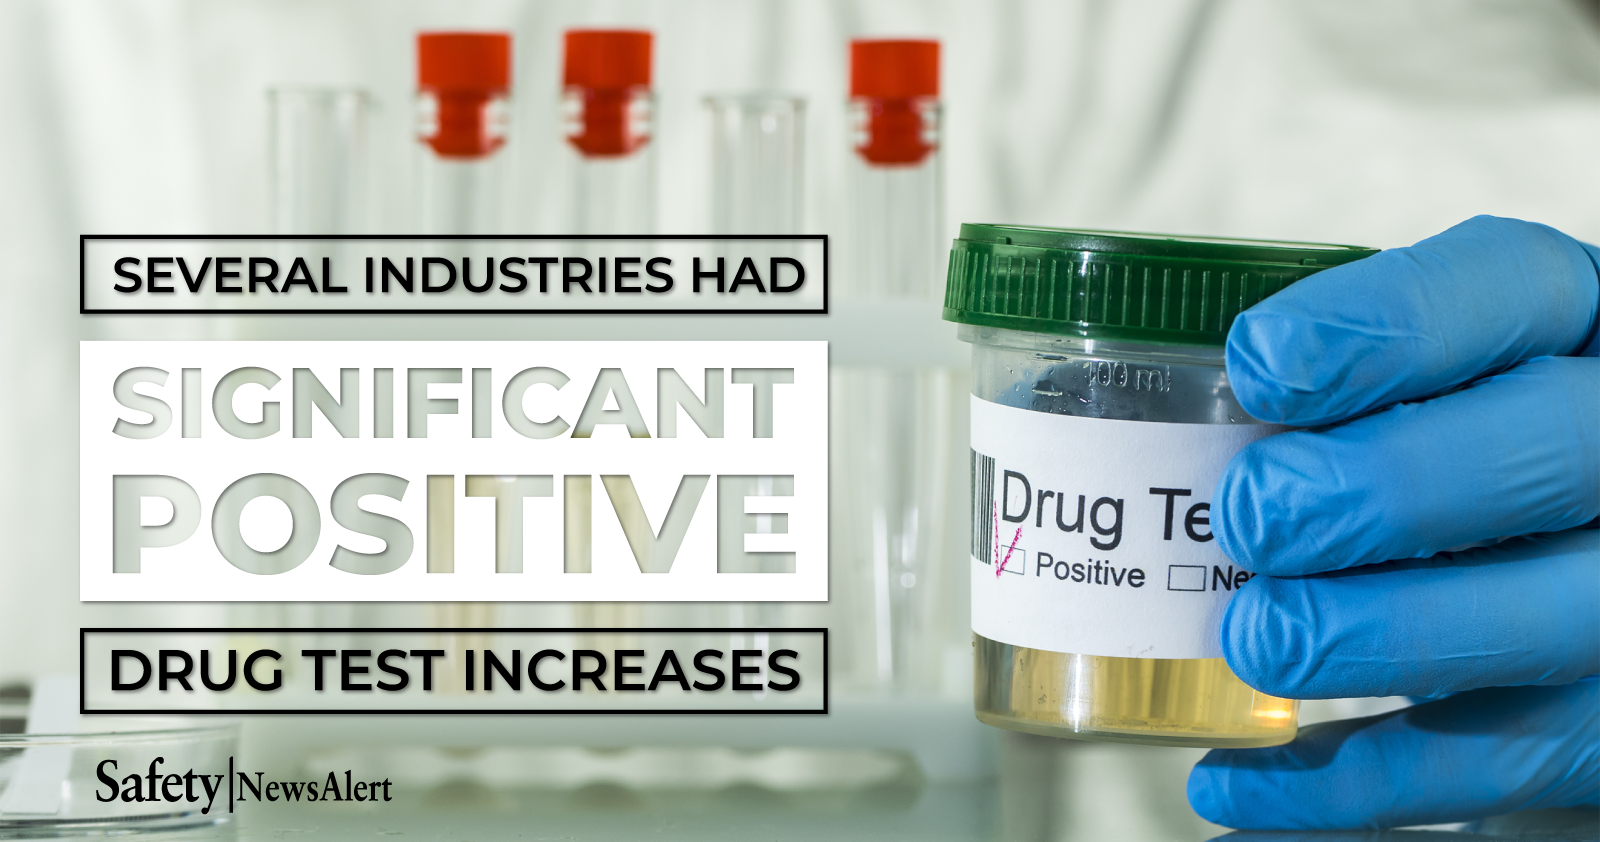 several industries had significant positive drug test increases